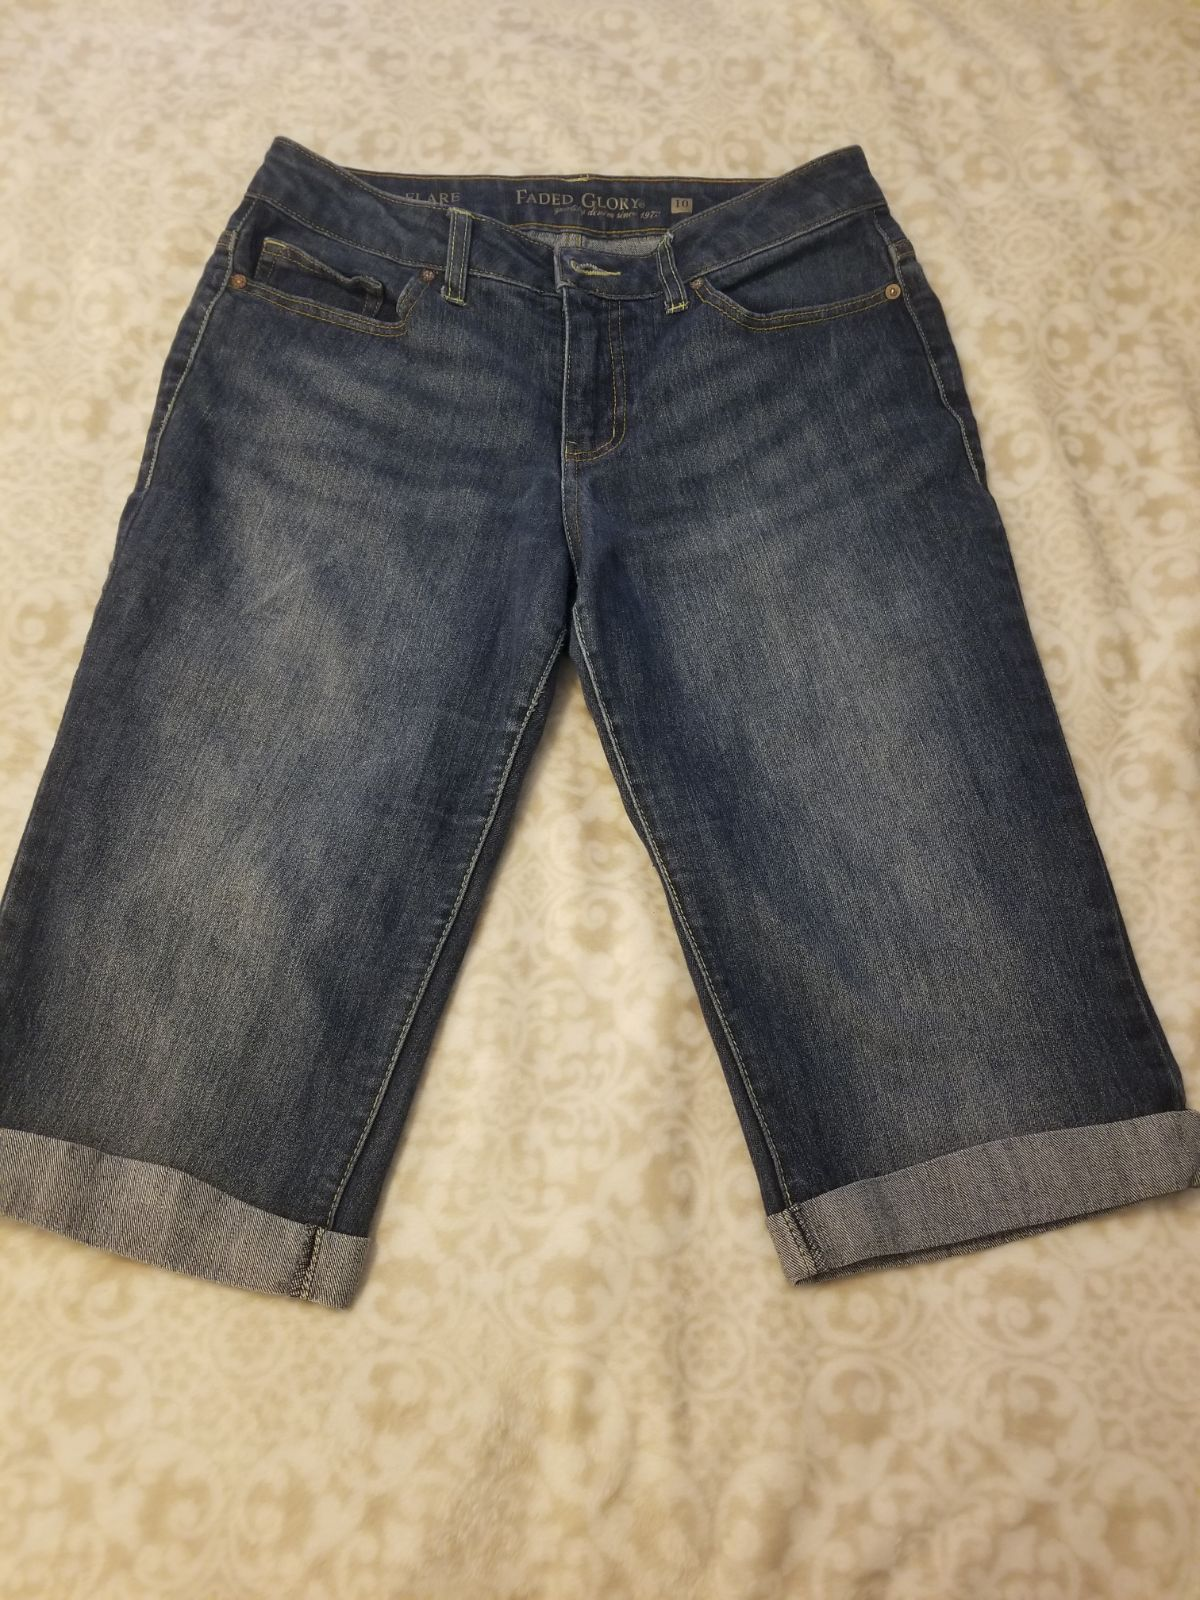 Women's Bermuda denim Jean's size 10